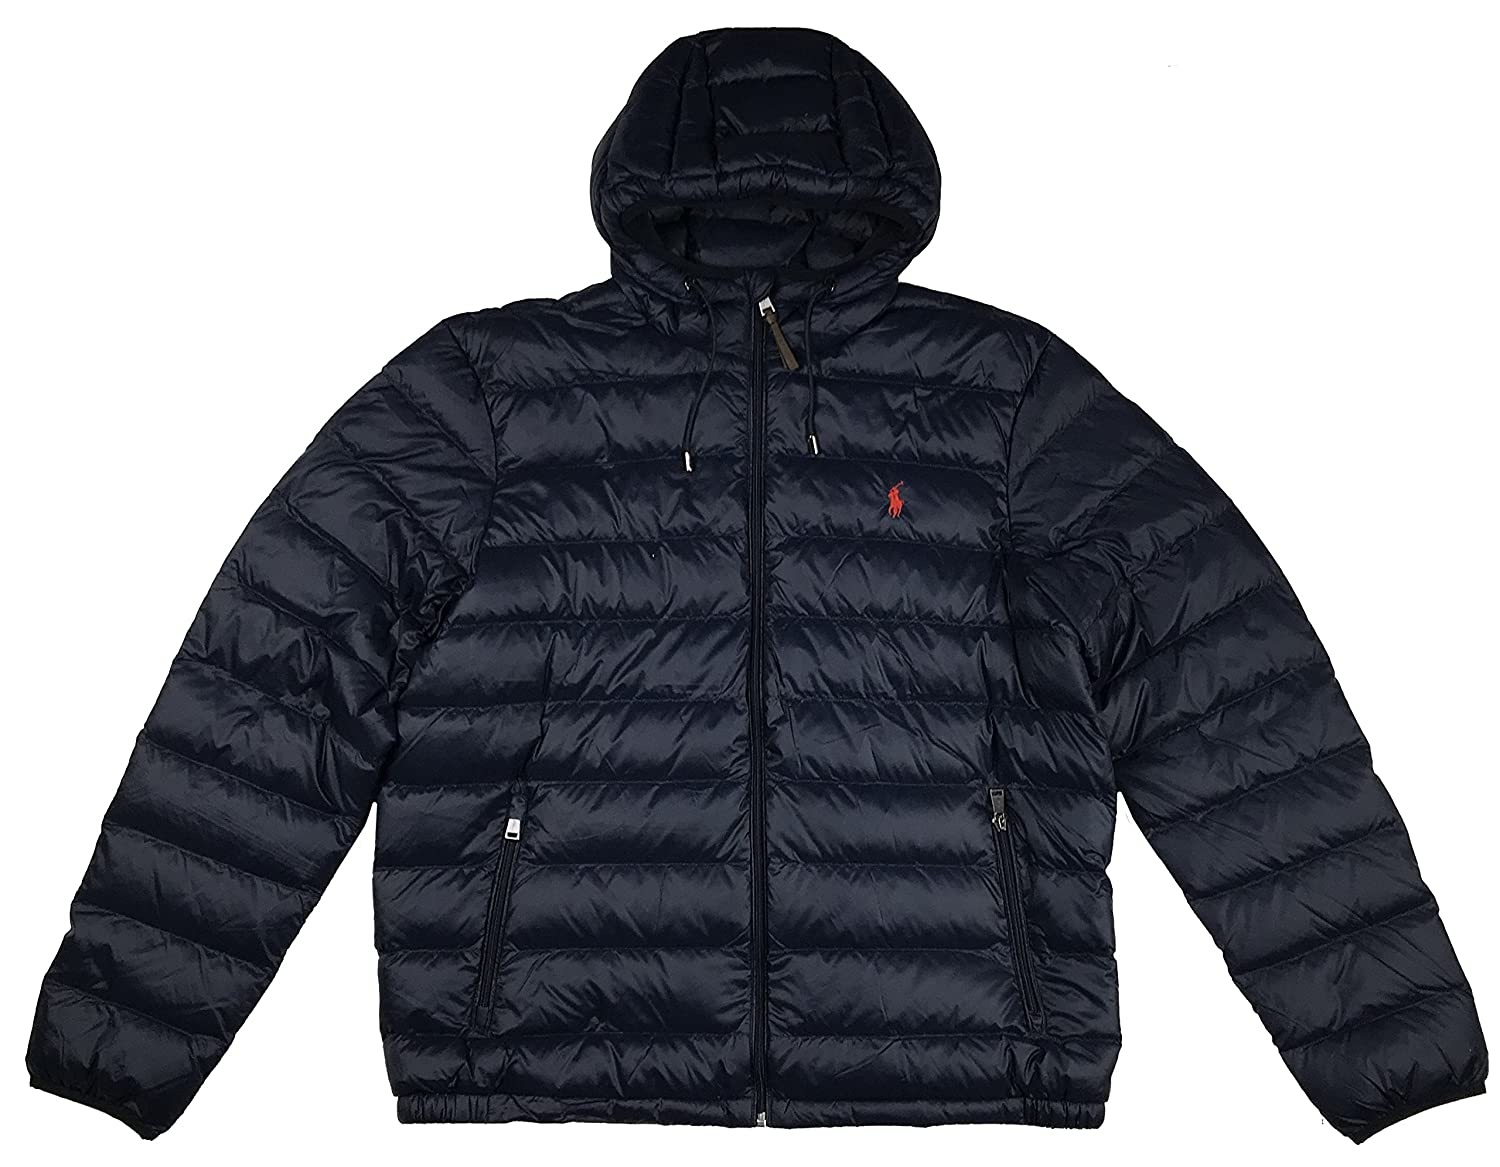 Polo Ralph Lauren Men's Hooded Down Jacket, Packable